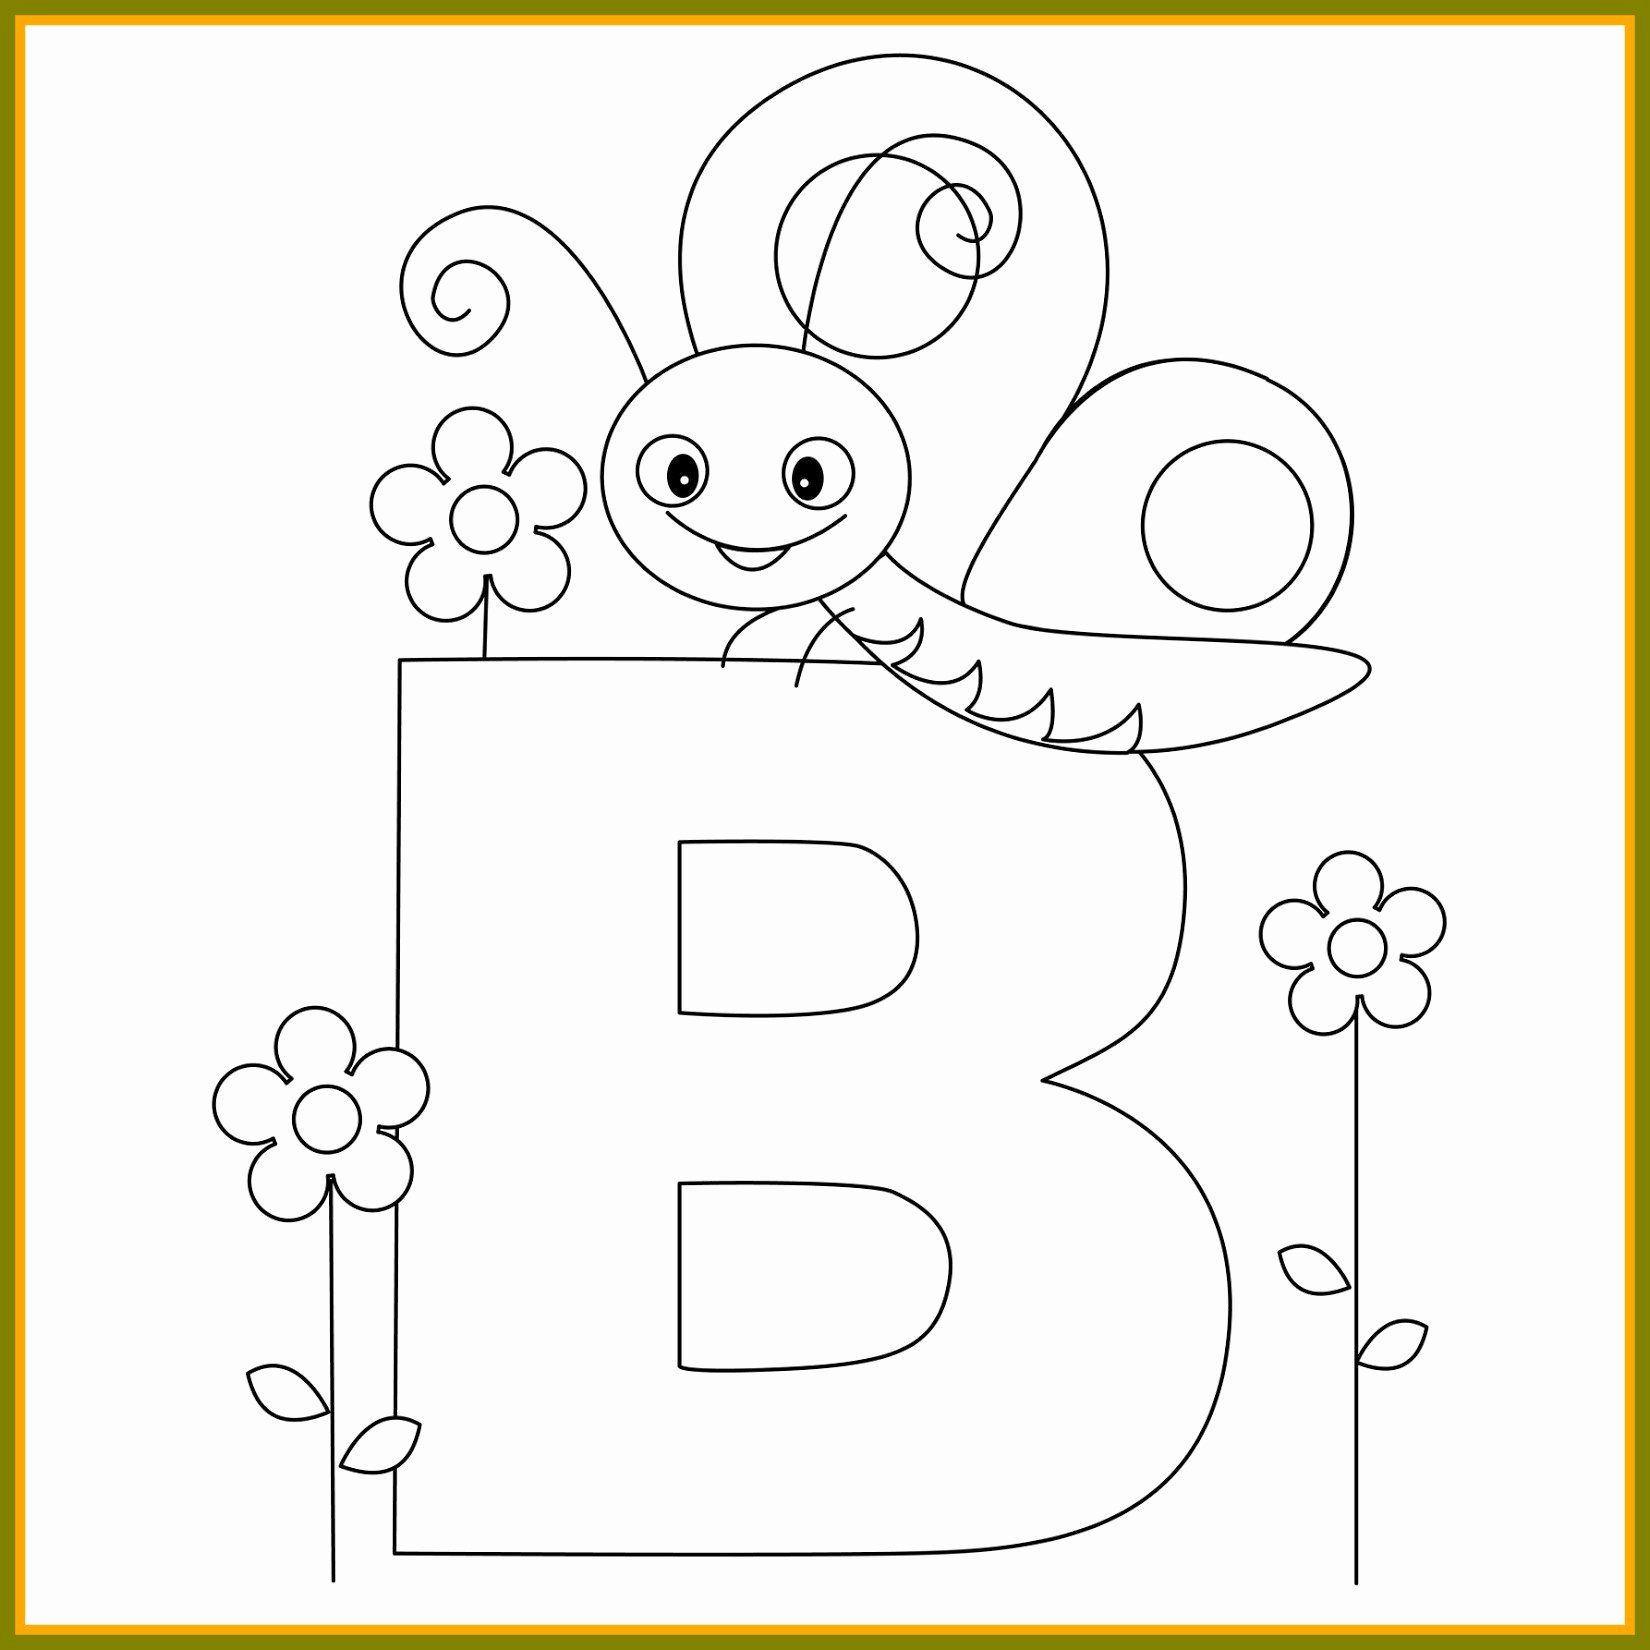 Alphabet Coloring Pages For Preschoolers Elegant Letter C Coloring Pages For Toddle Kindergarten Coloring Pages Butterfly Coloring Page Letter B Coloring Pages